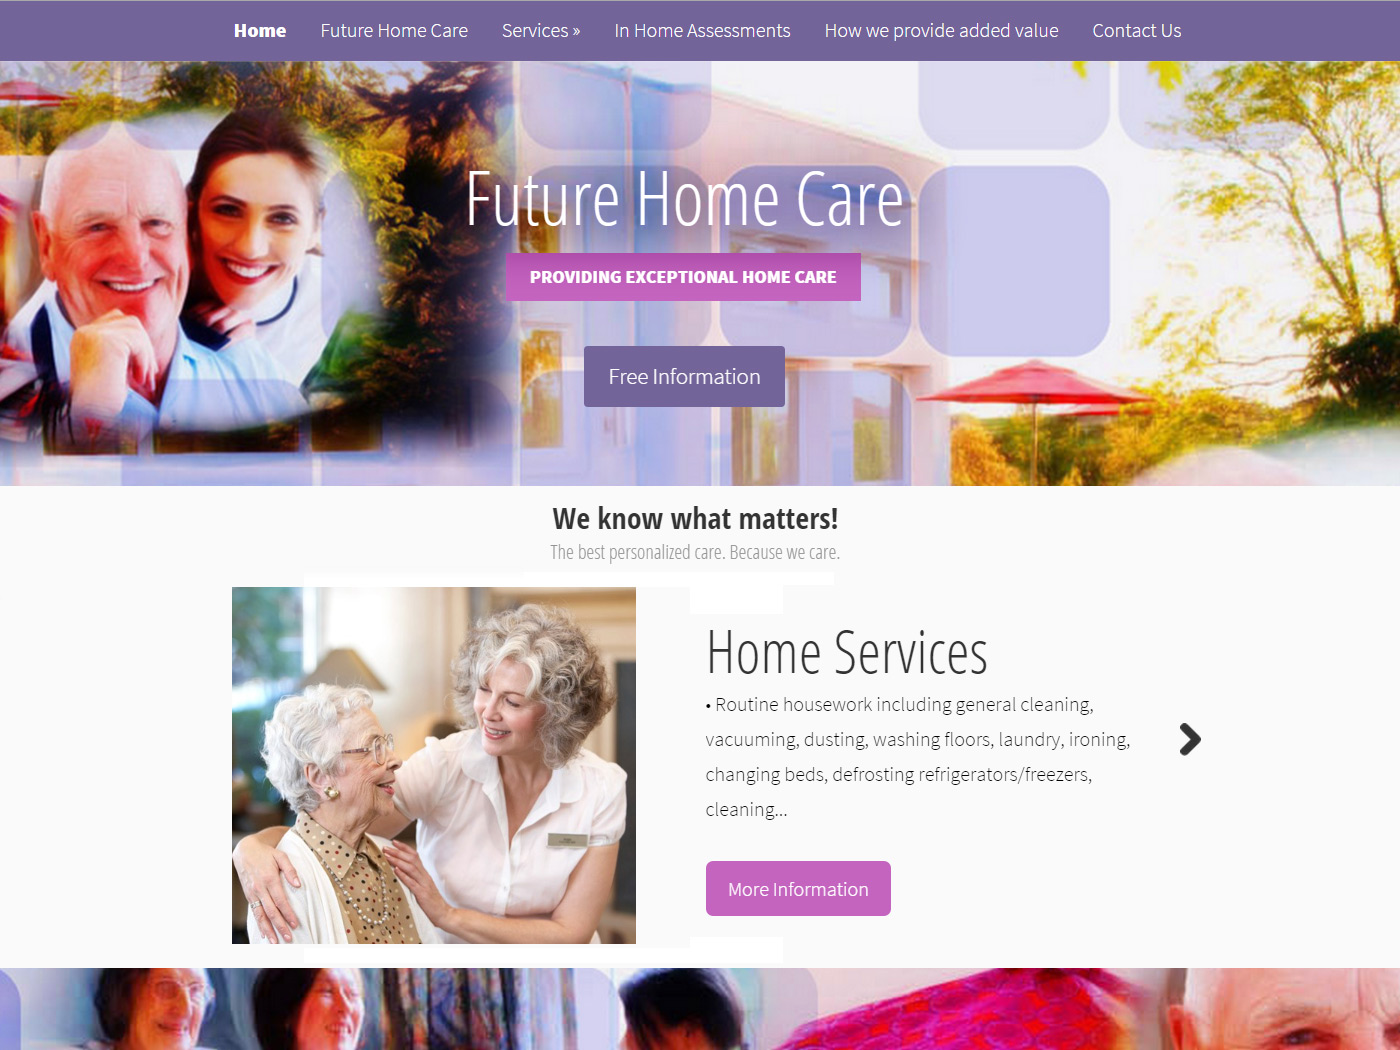 Future Home Care